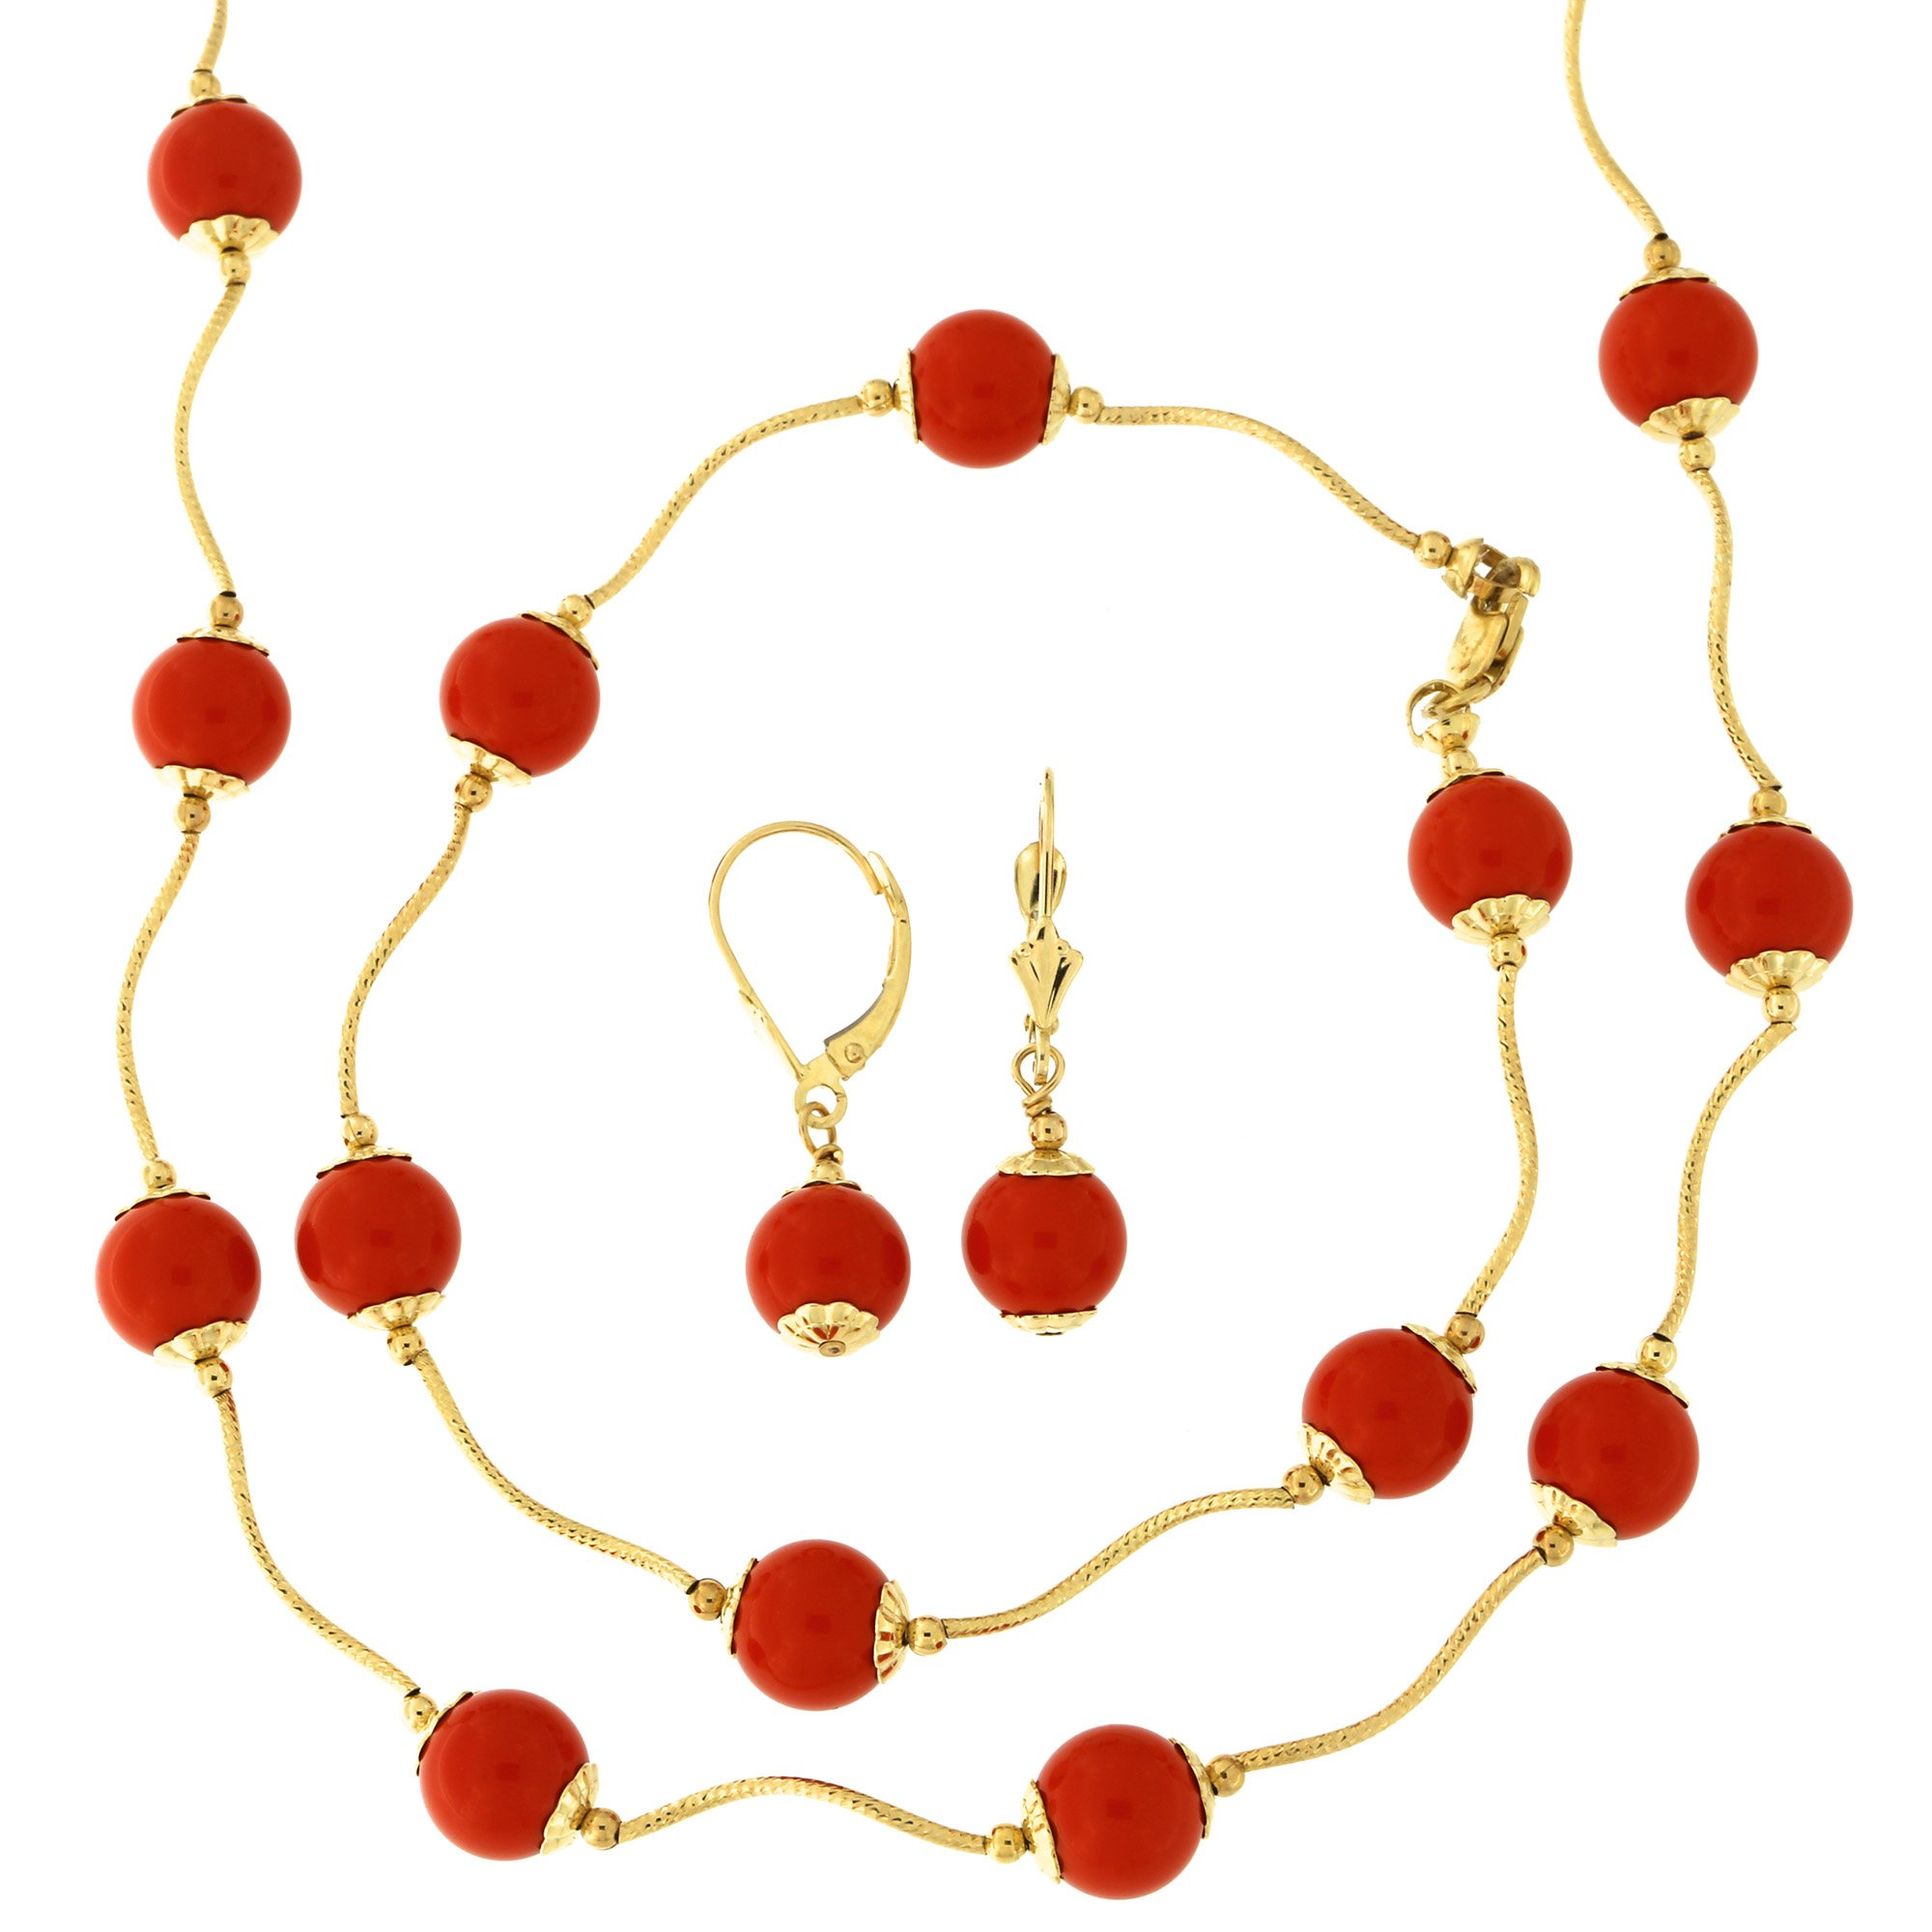 14k Yellow Gold Diamond Cut 8mm Capped Simulated Coral Station Necklace, Earrings and Bracelet Set by